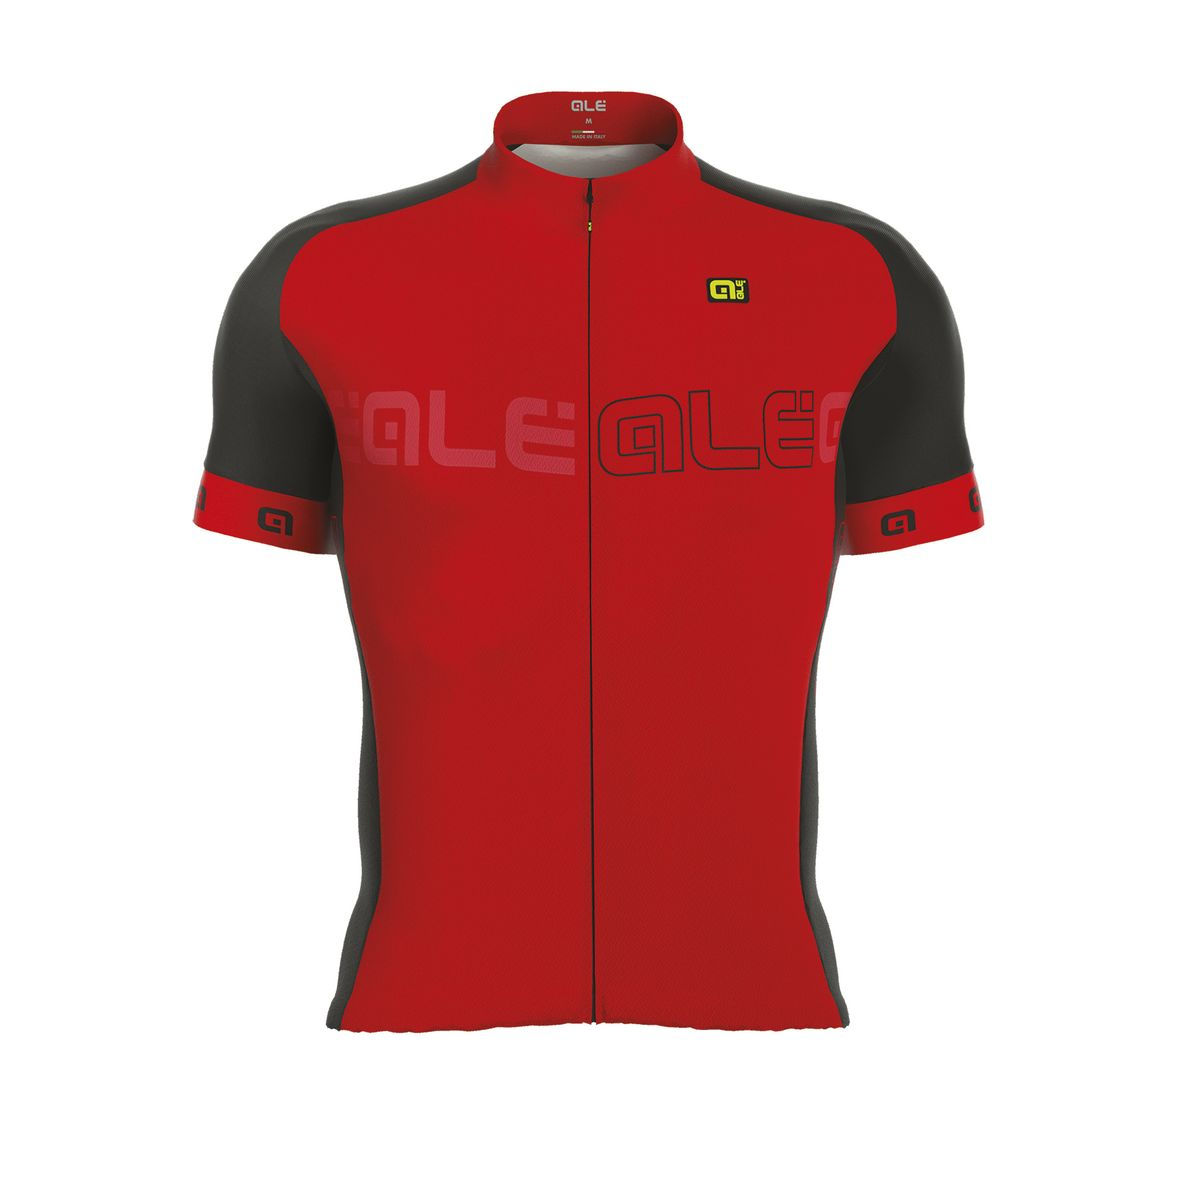 EXCEL BASIC cycling jersey